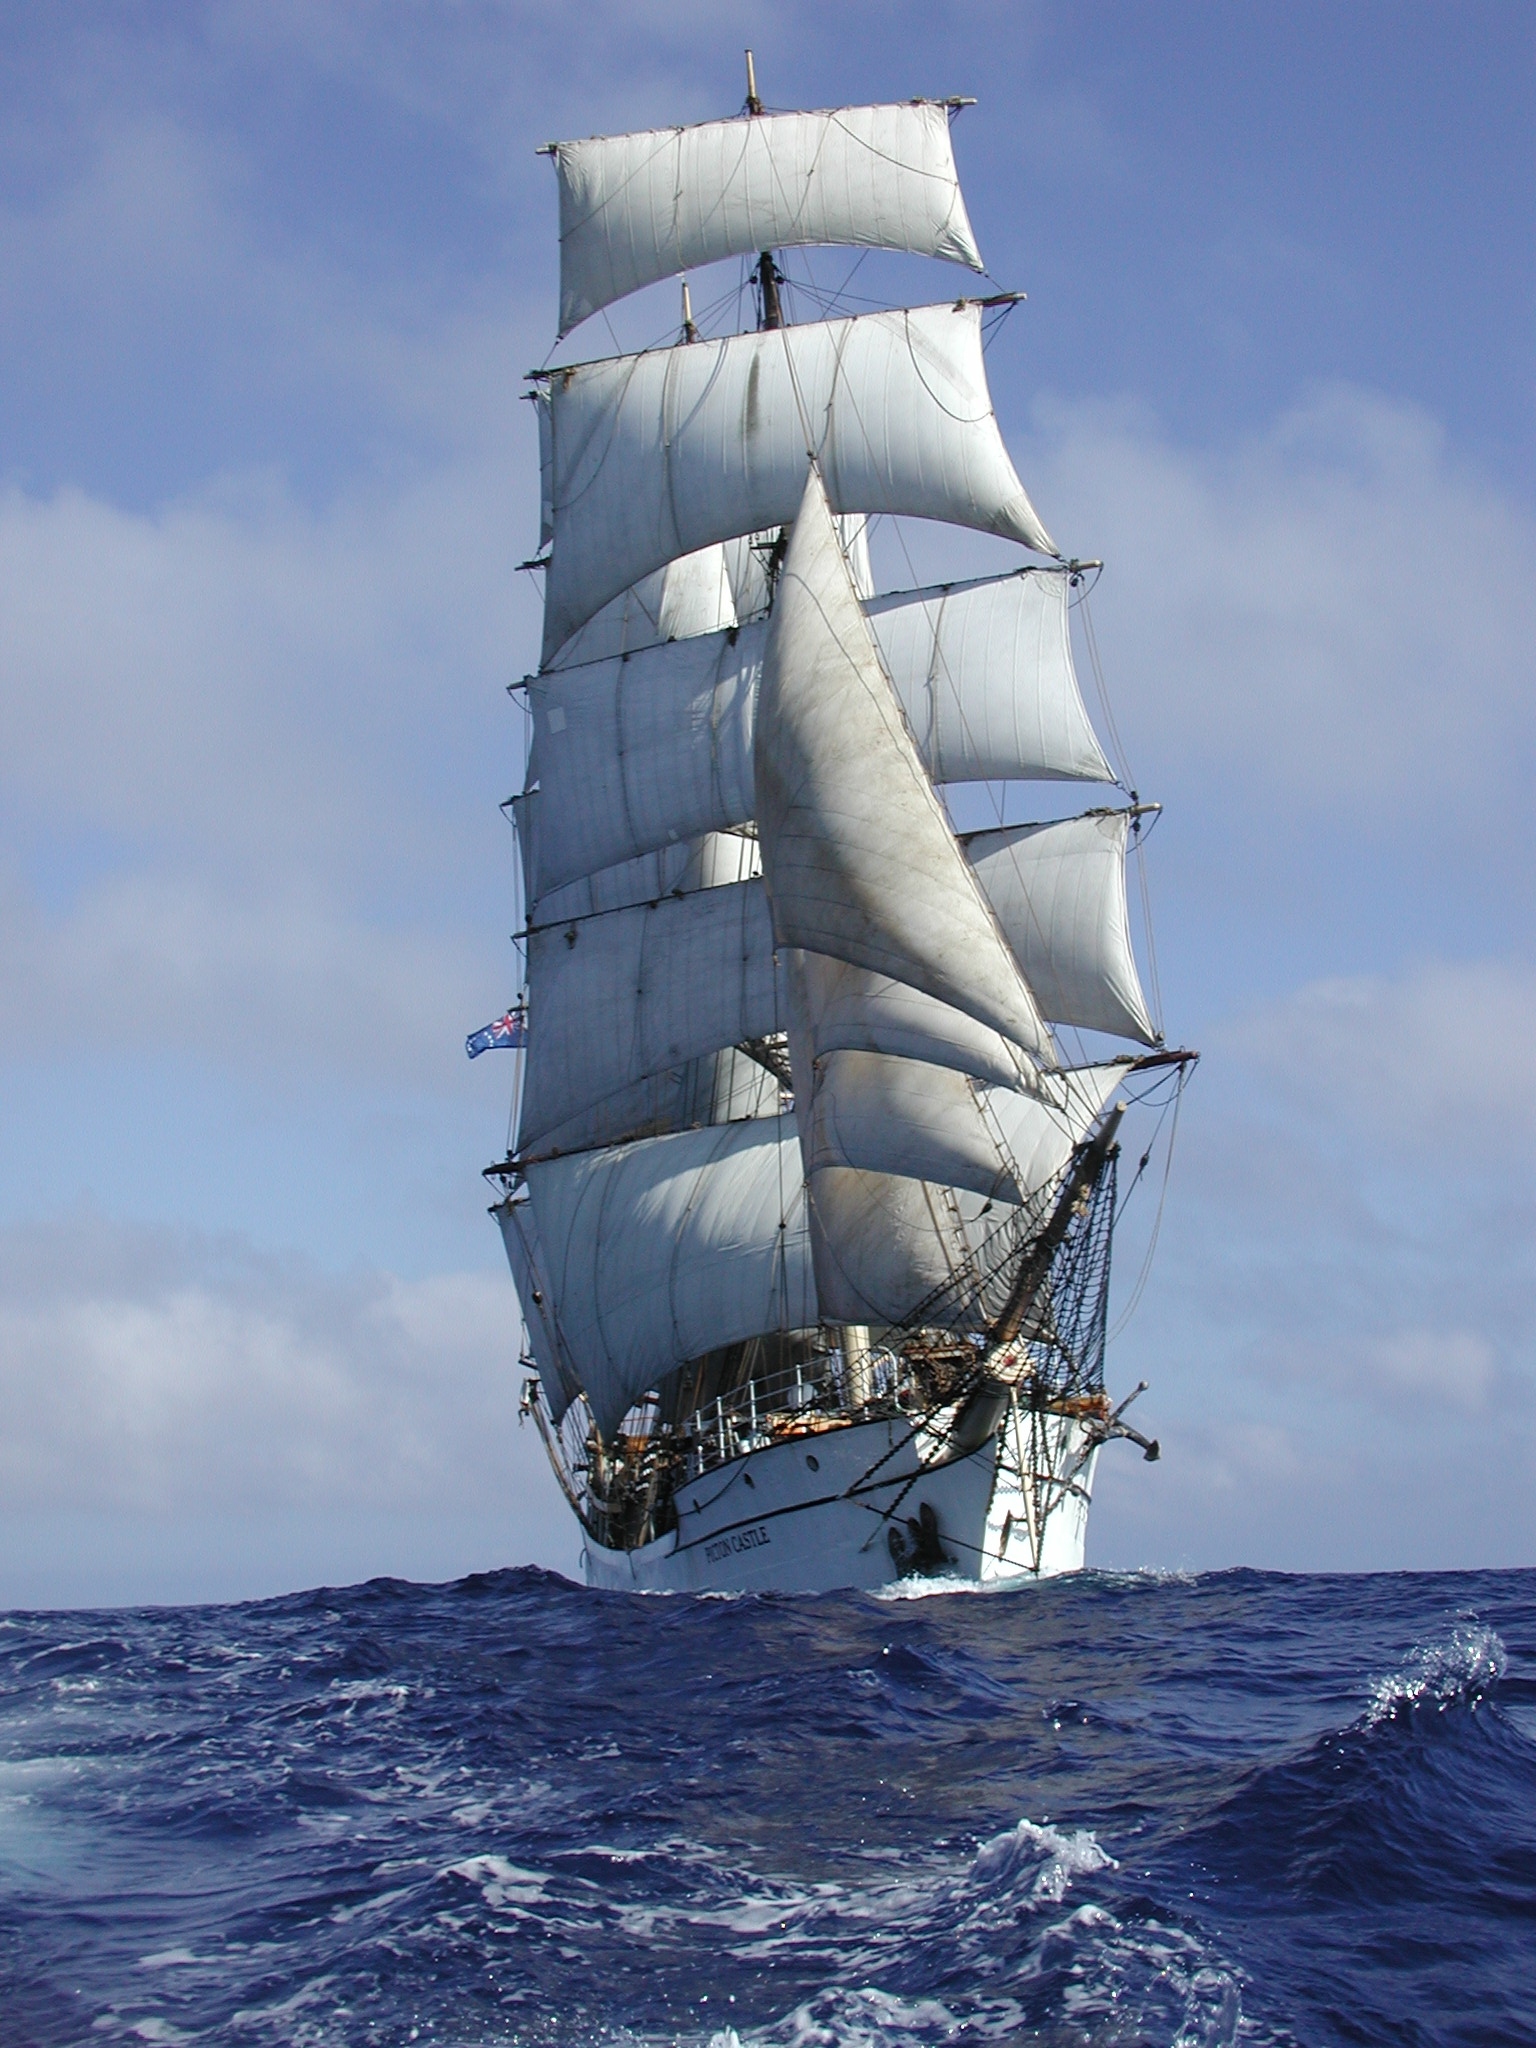 Picton Castle under full sail